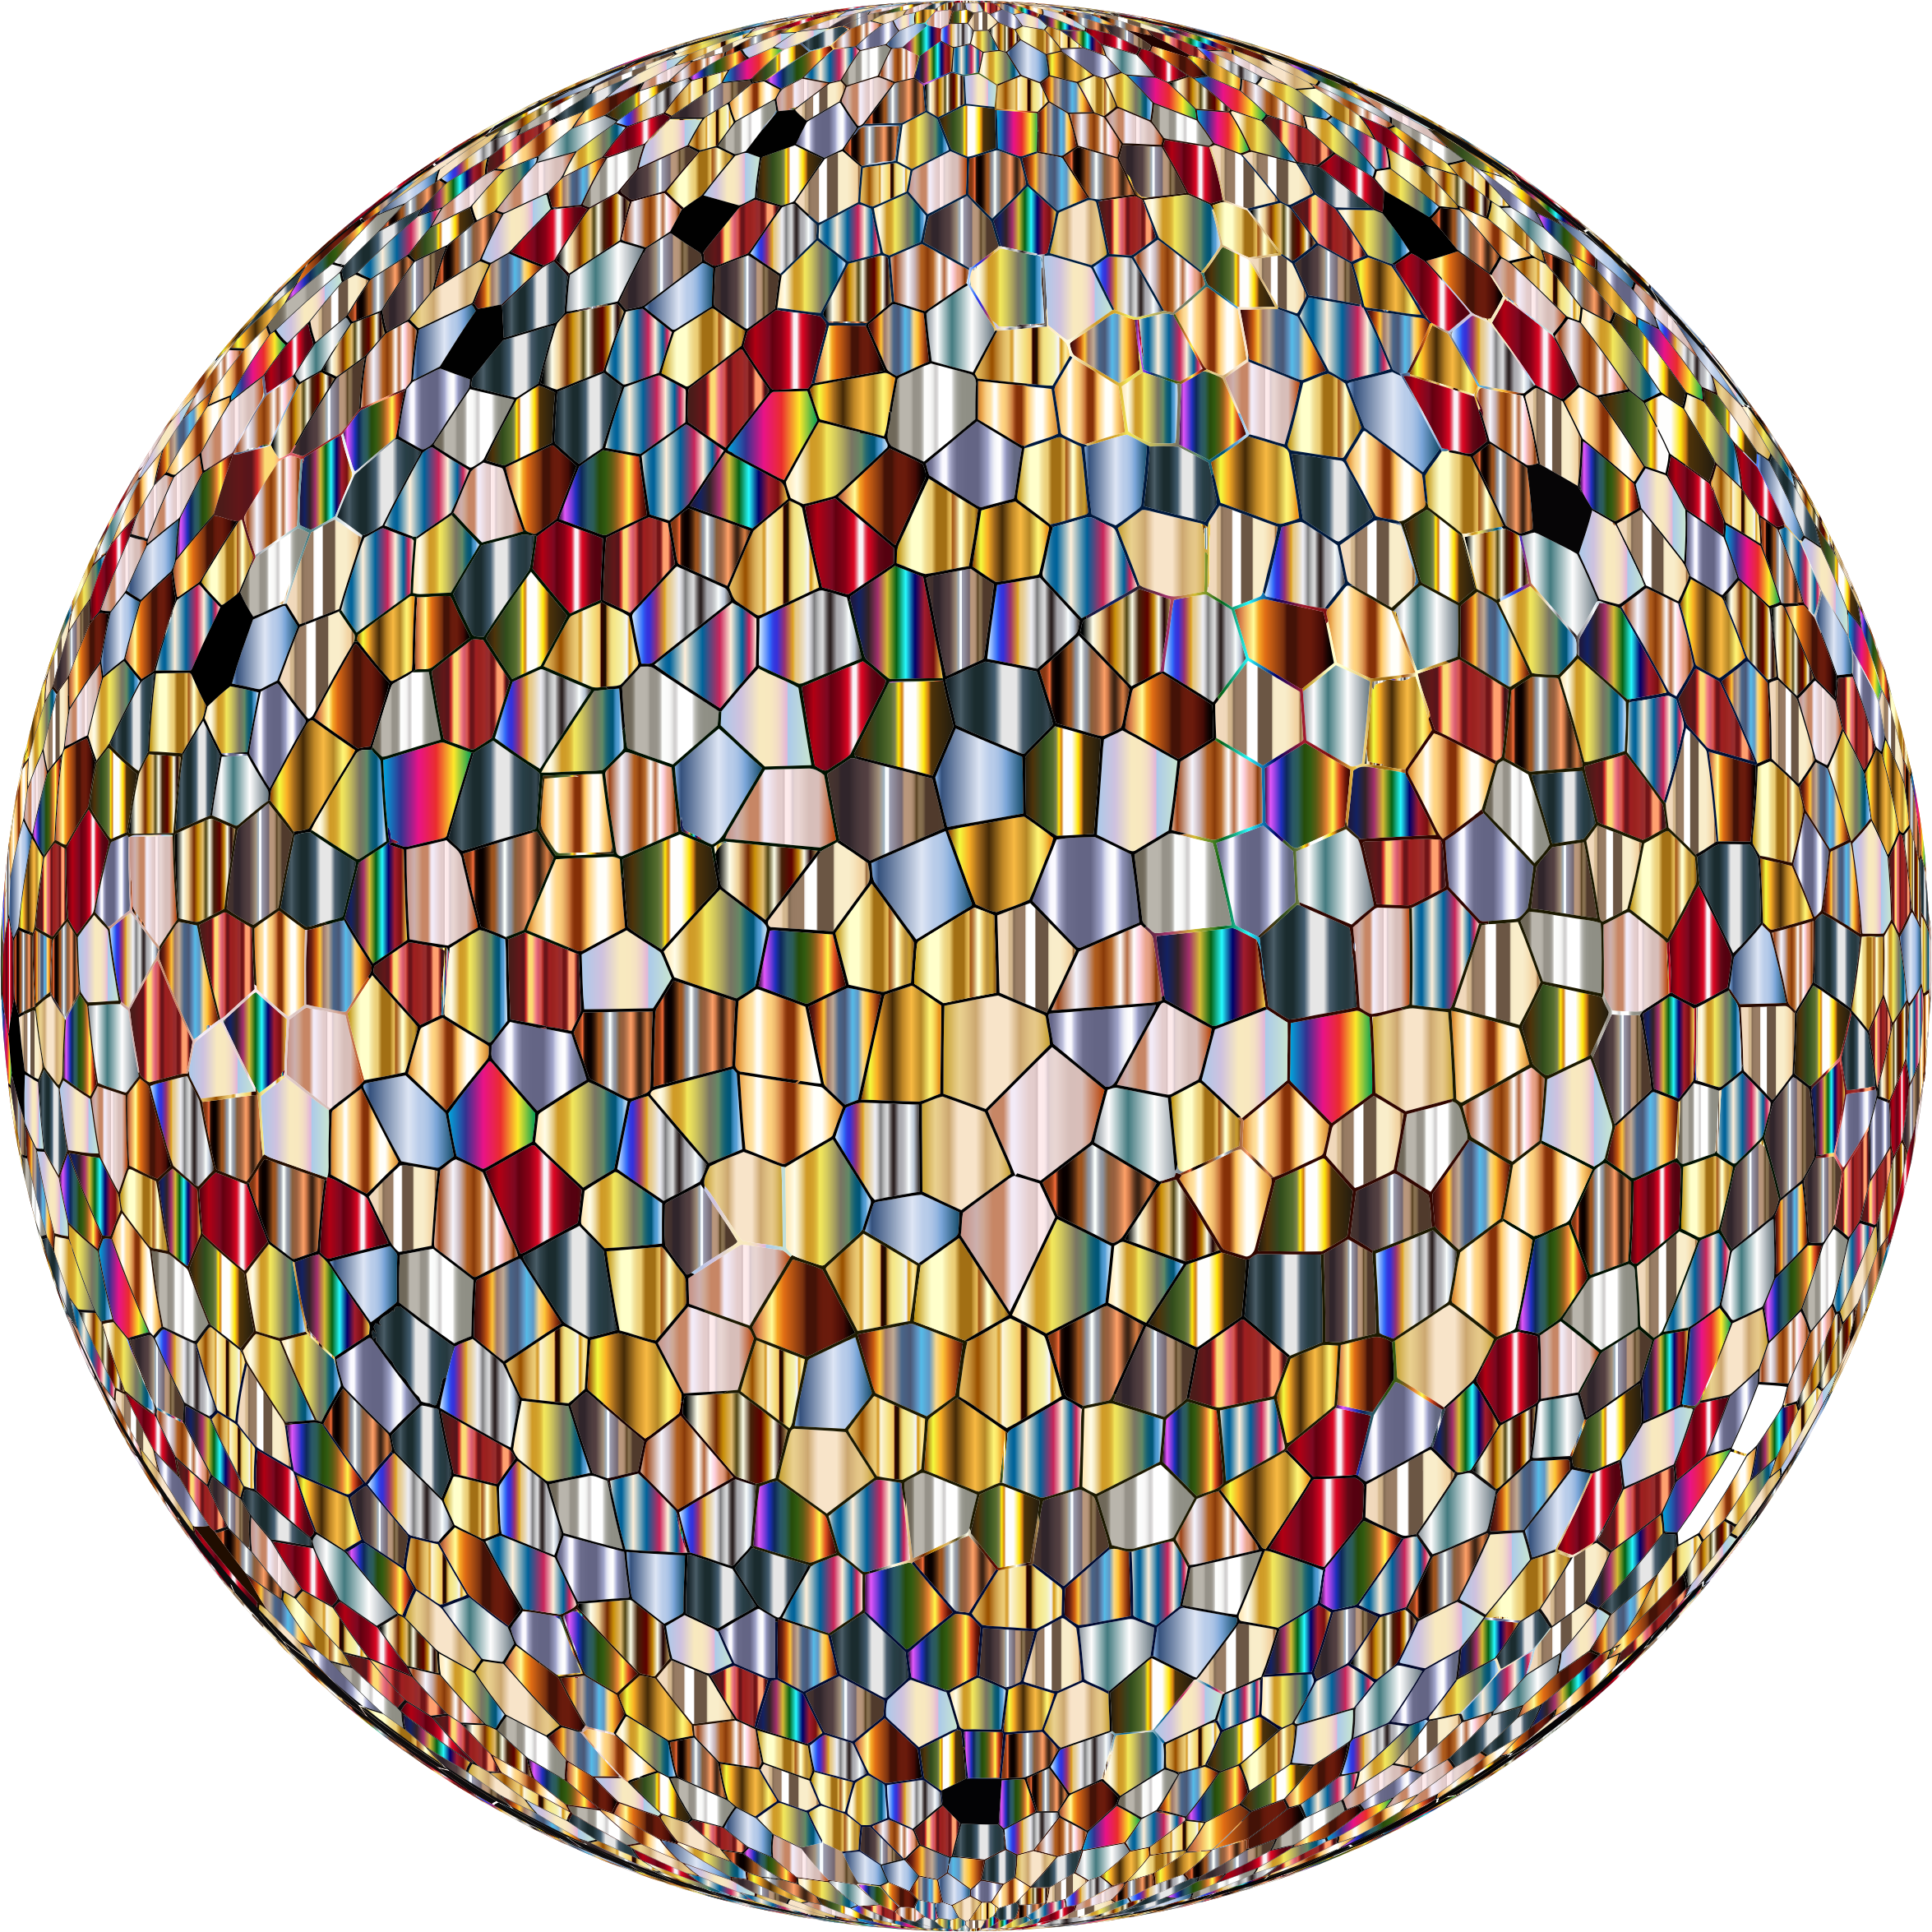 Shimmering Iridescent Mosaic Tiles Sphere by GDJ